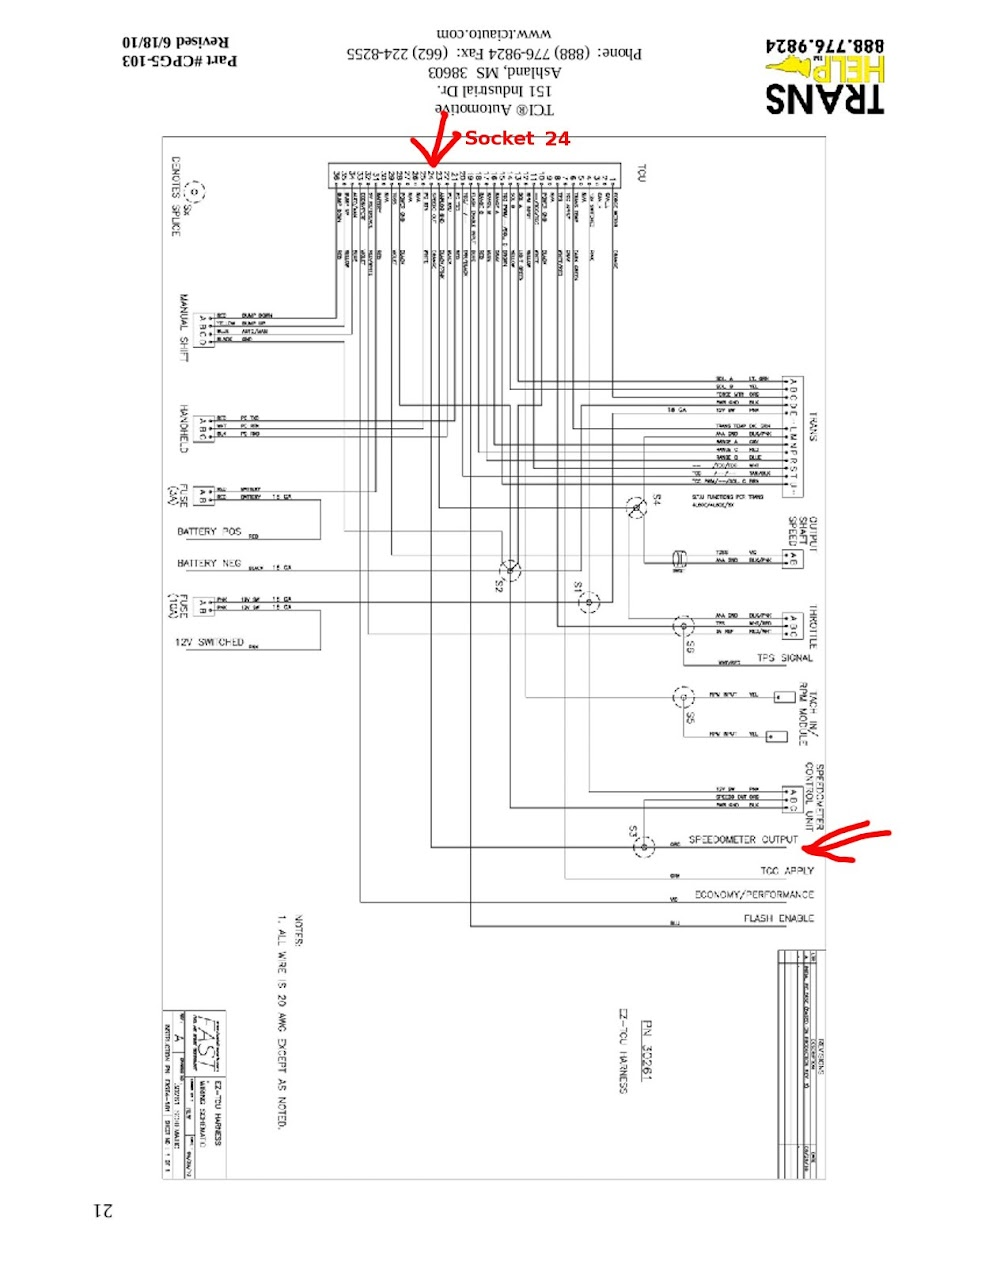 Line Drawing Ez Wiring Harness Diagram Services Jeep Tci Tcu Free Vehicle Diagrams U2022 Rh Generalinfo Co Review